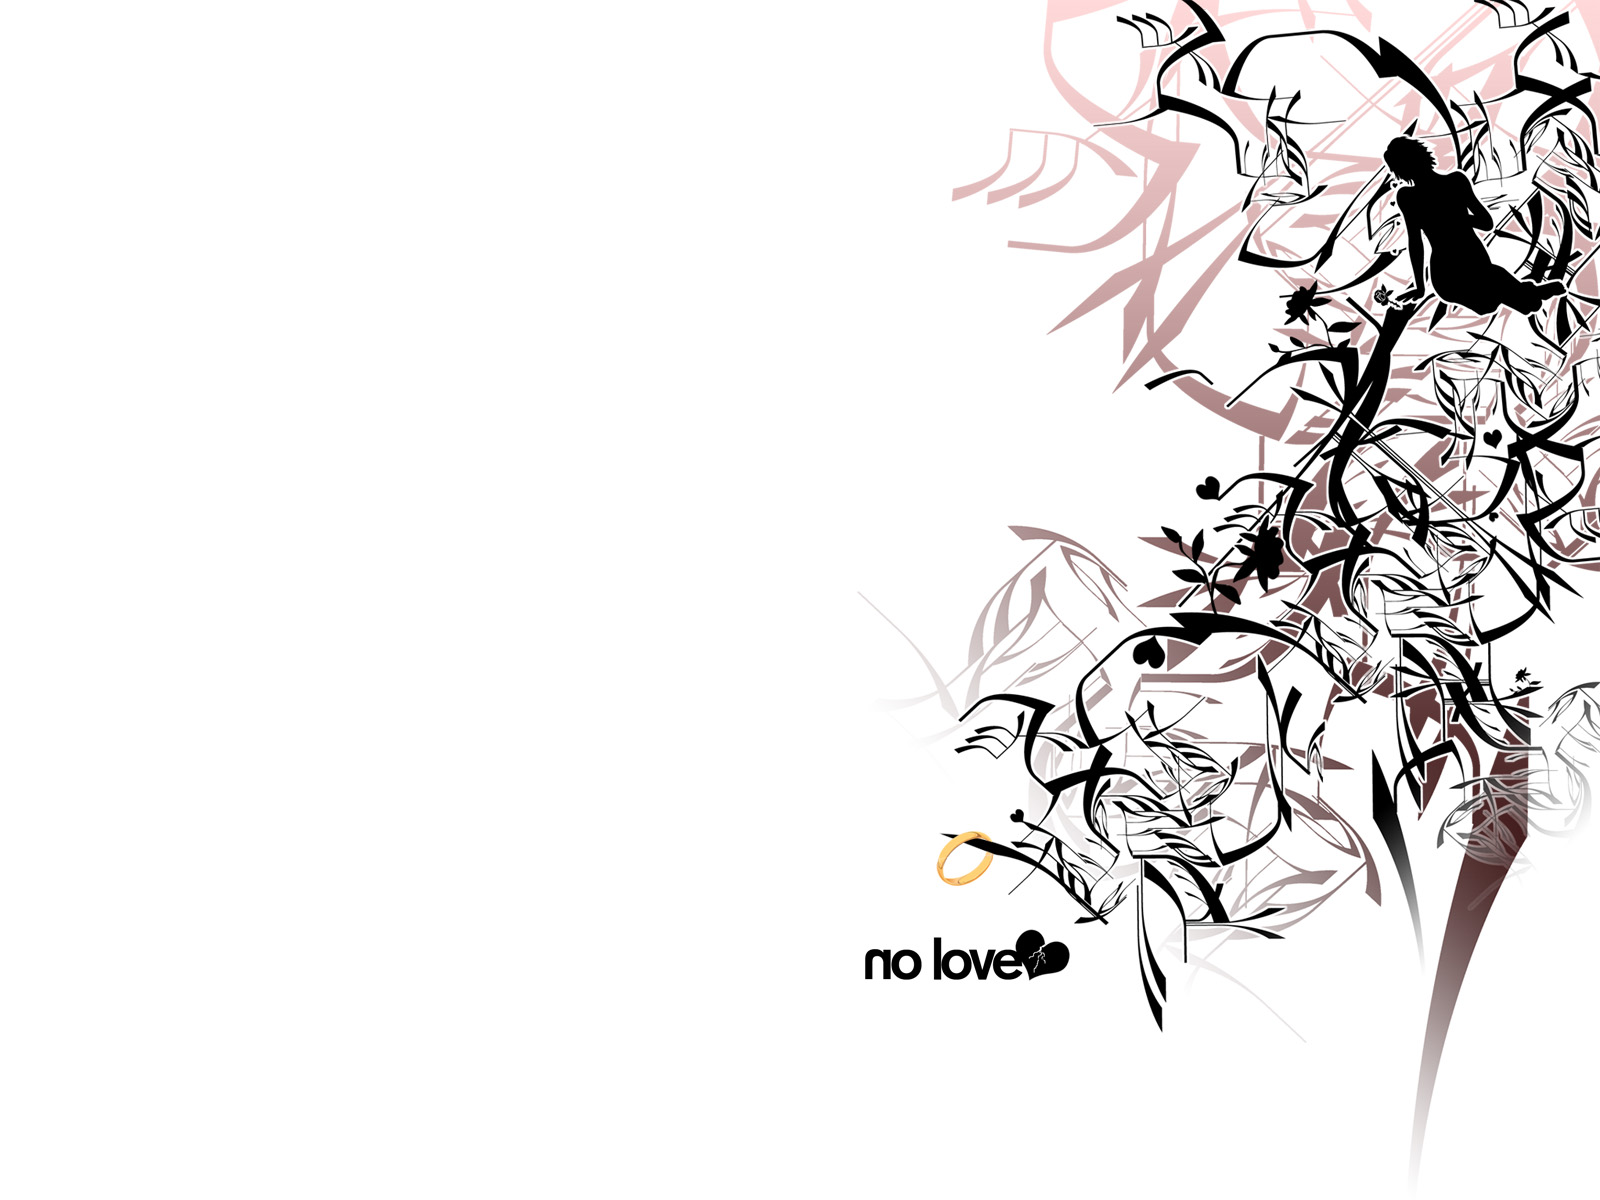 No Love   Wallpaper by vhm Alex on deviantART 1600x1200